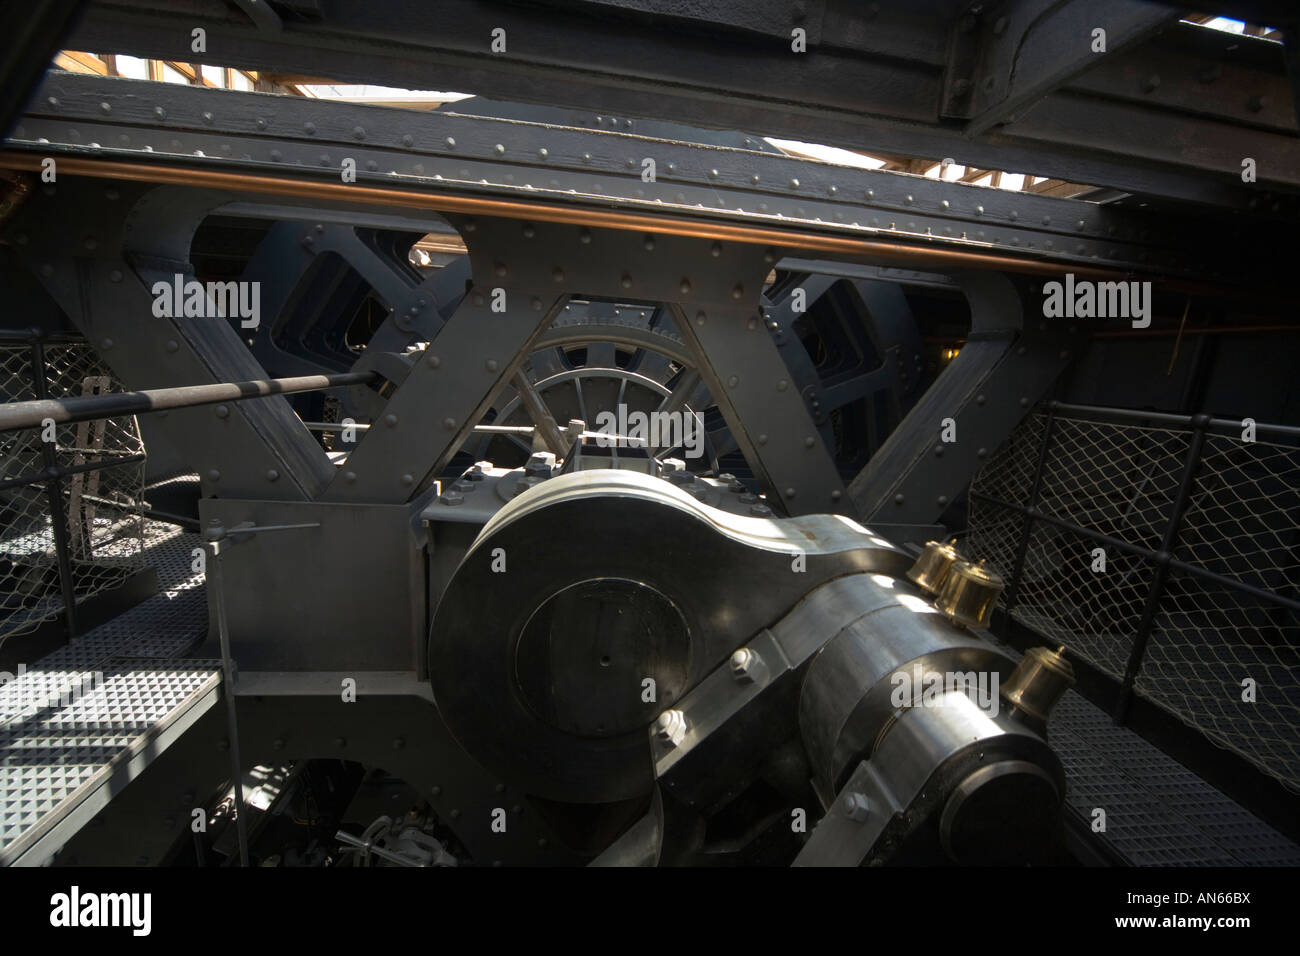 Steam Ship SS Great Britain designed and built by Isambard Kingdom Brunel Promenade deck Engine room Stock Photo